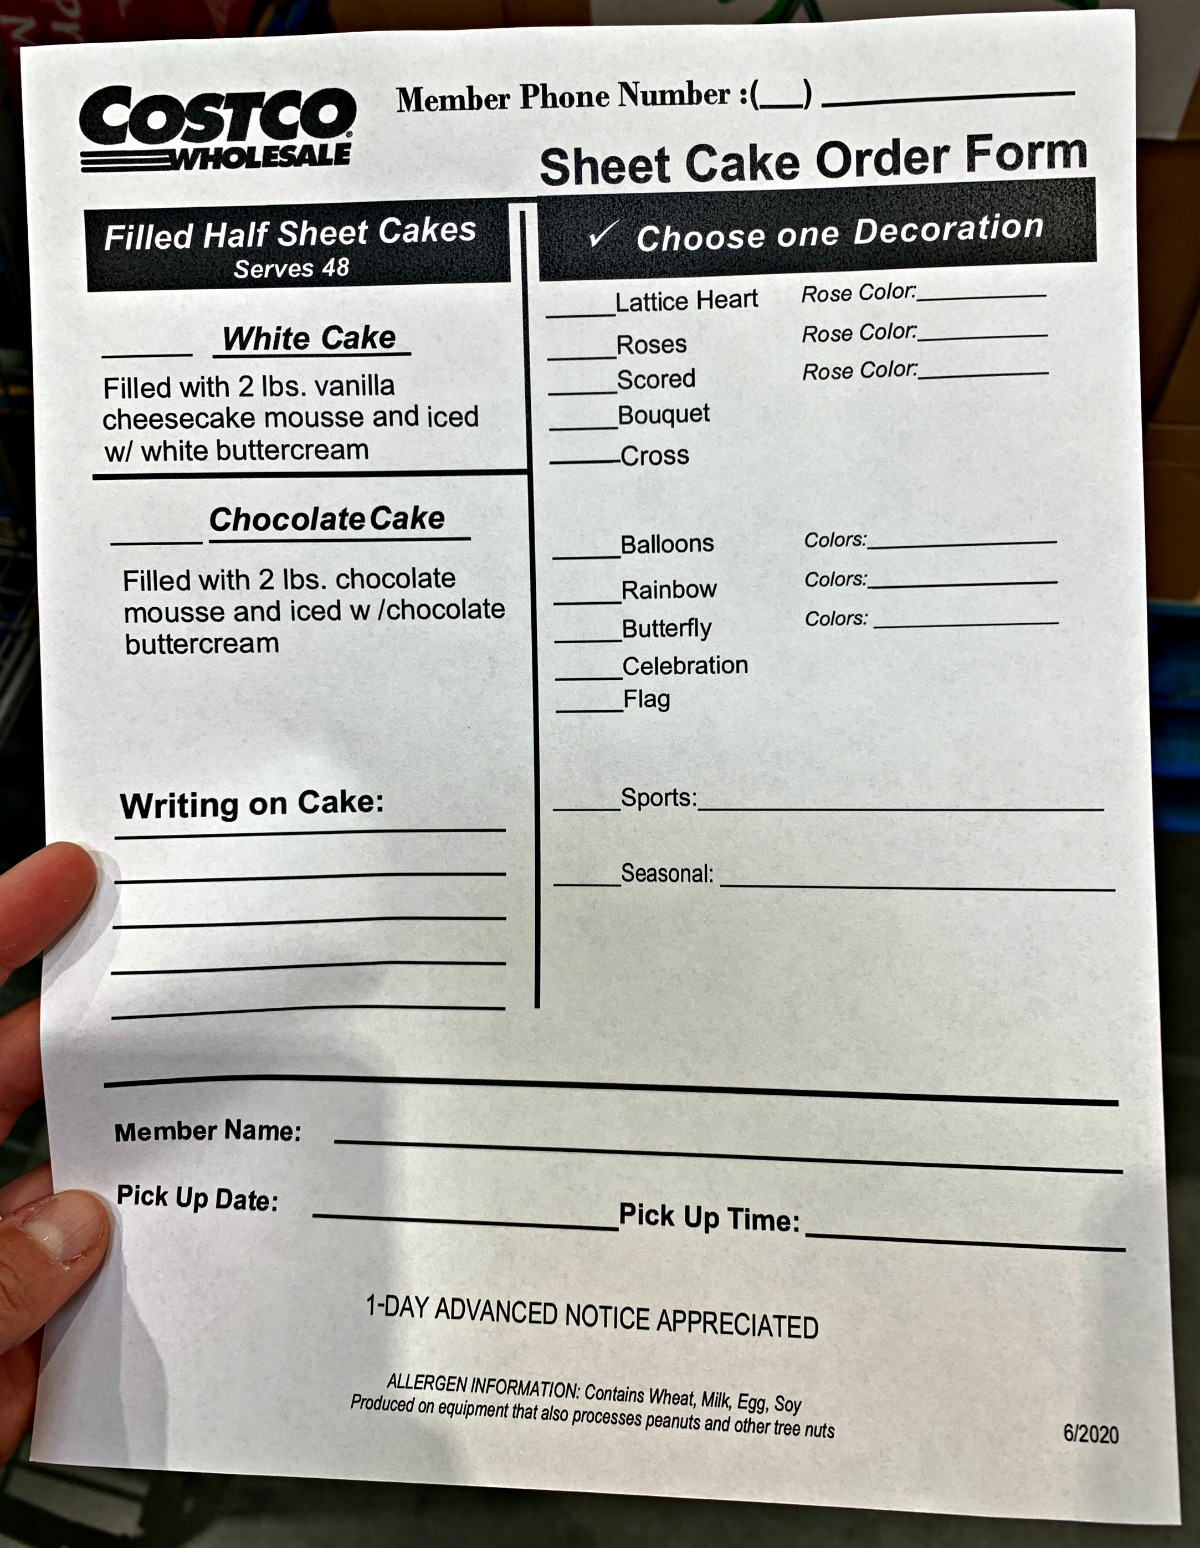 Costco cake ordering form - July 2020